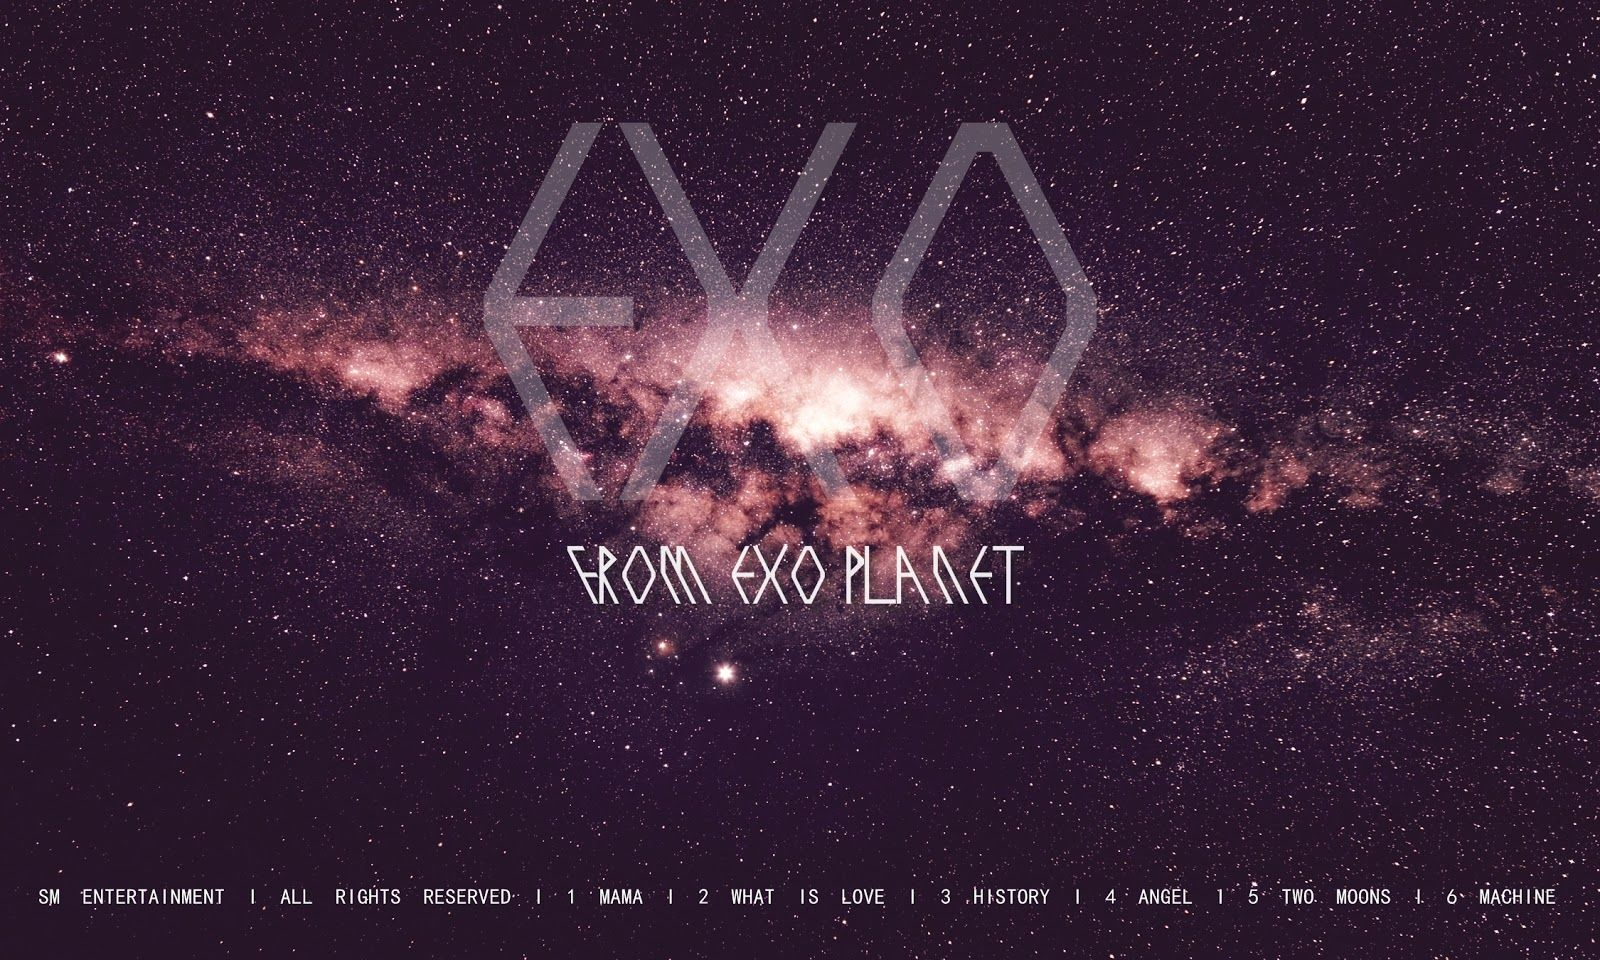 Exo iphone wallpaper tumblr - Tumblr Kpop Backgrounds Google Search